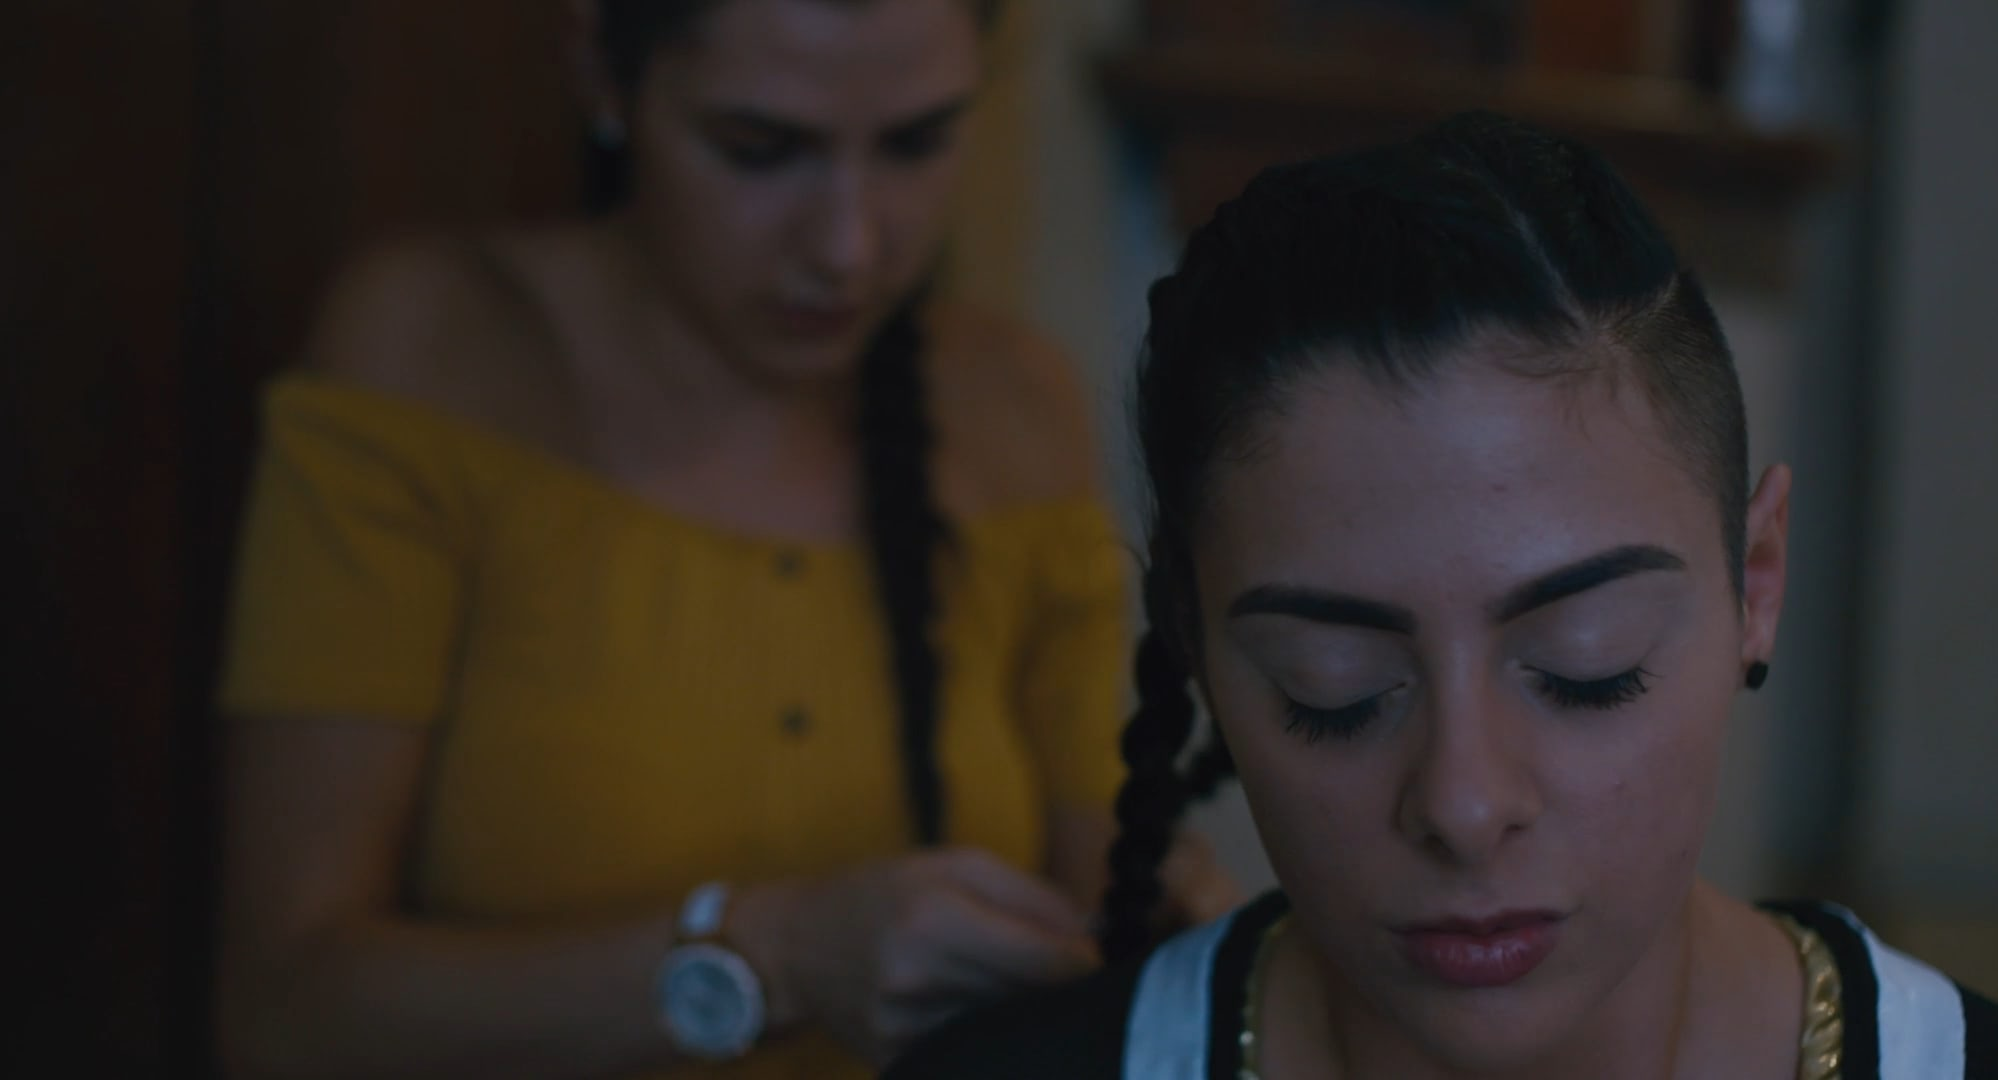 A young woman with her eyes closed has her hair braided by another woman behind her.